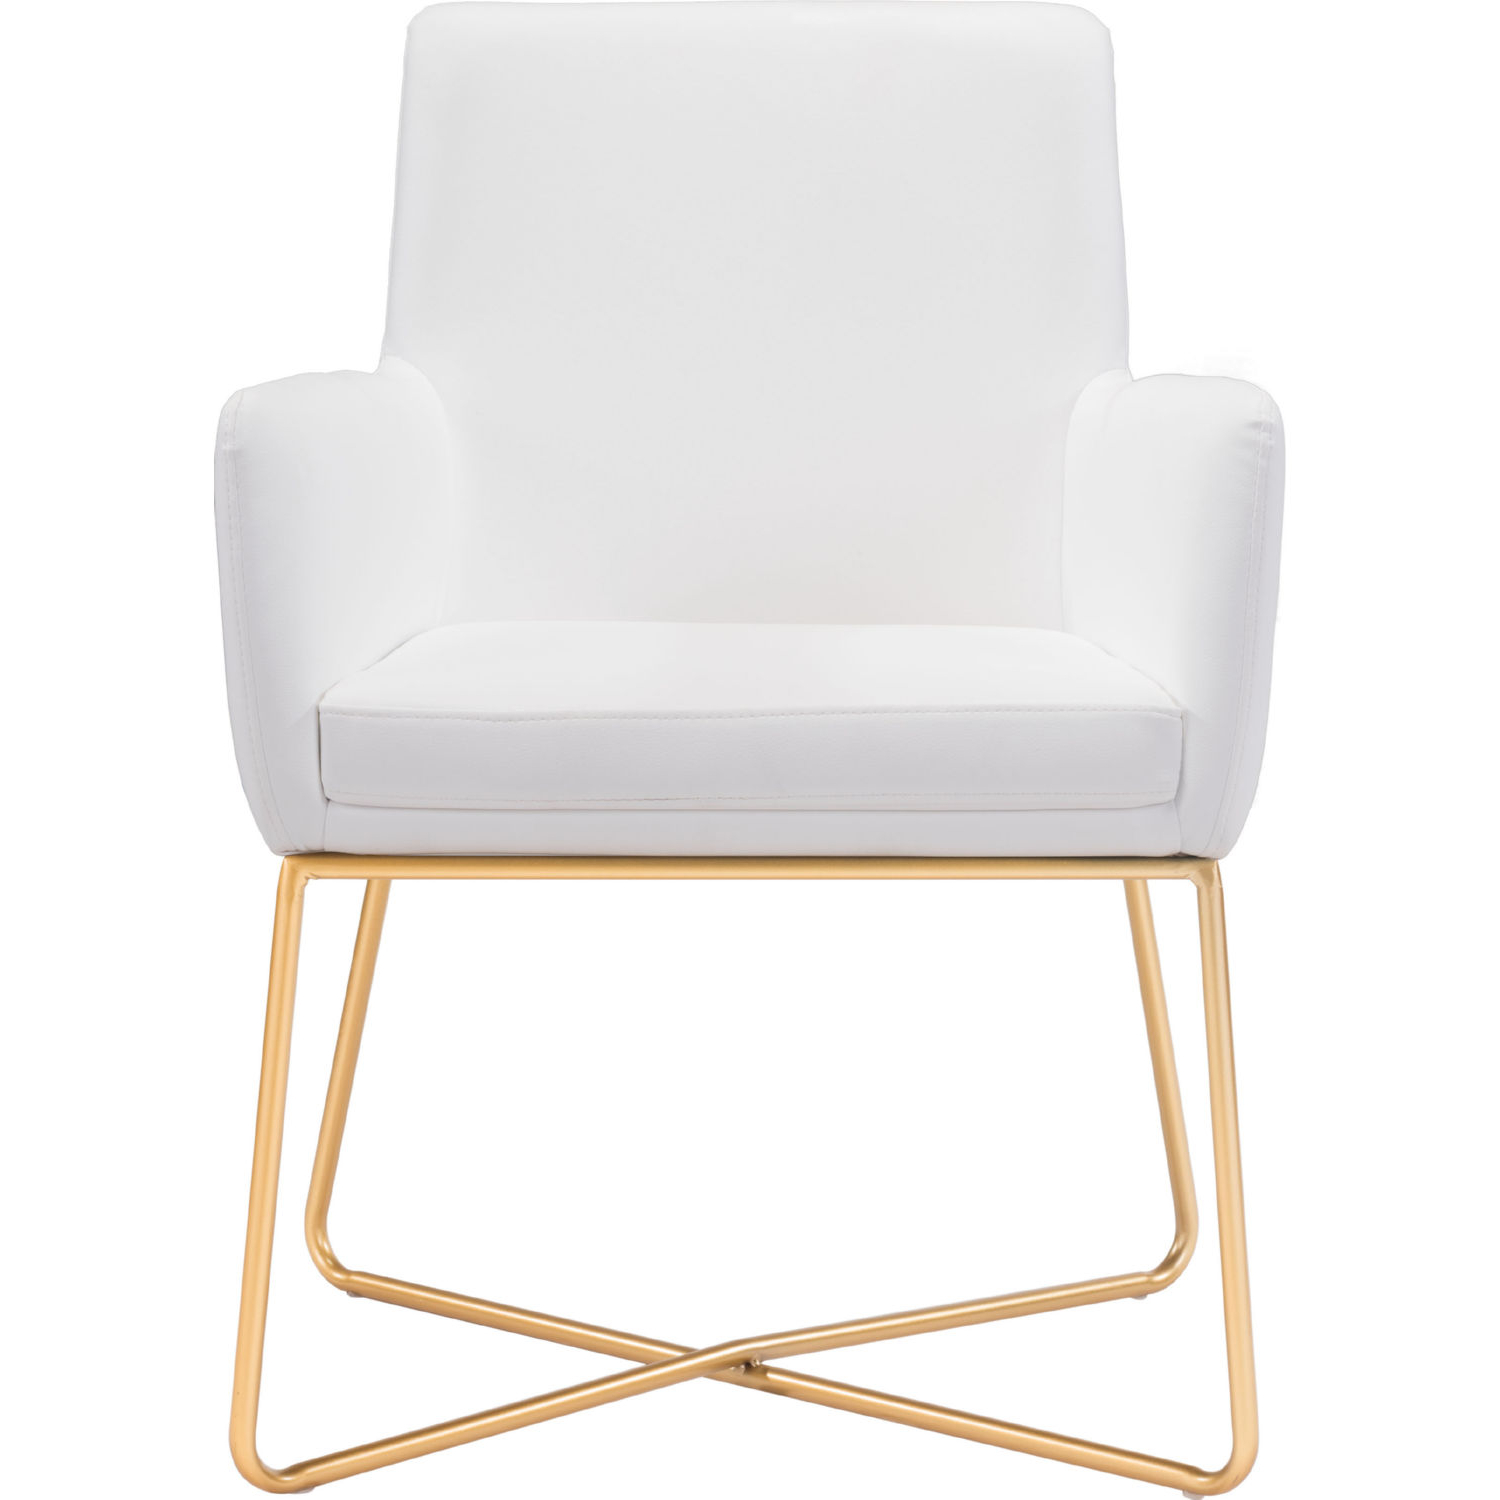 Zuo 101147 Honoria Arm Chair In White Leatherette On Gold Metal With Well Known Honoria 3 Piece Dining Sets (View 20 of 25)